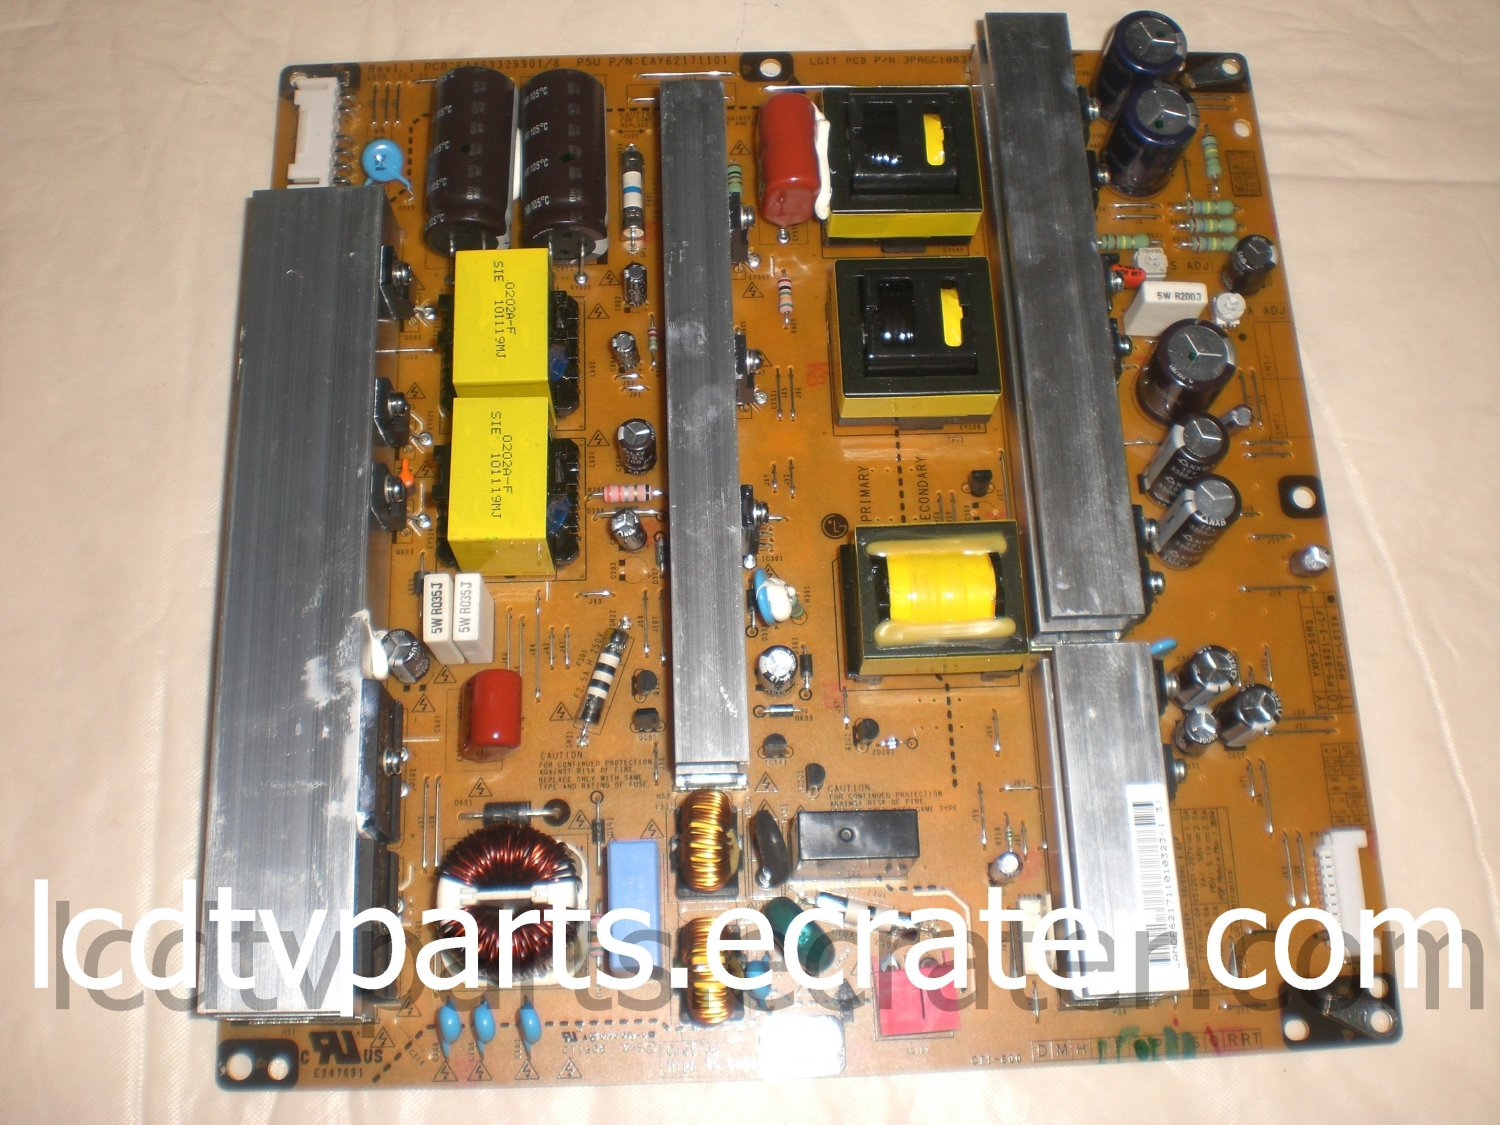 CRB31007101, PSPI-L013A, EAX63329901/8, EAY62171101, 3PAGC10037A-R, Power Supply for LG 50PZ550